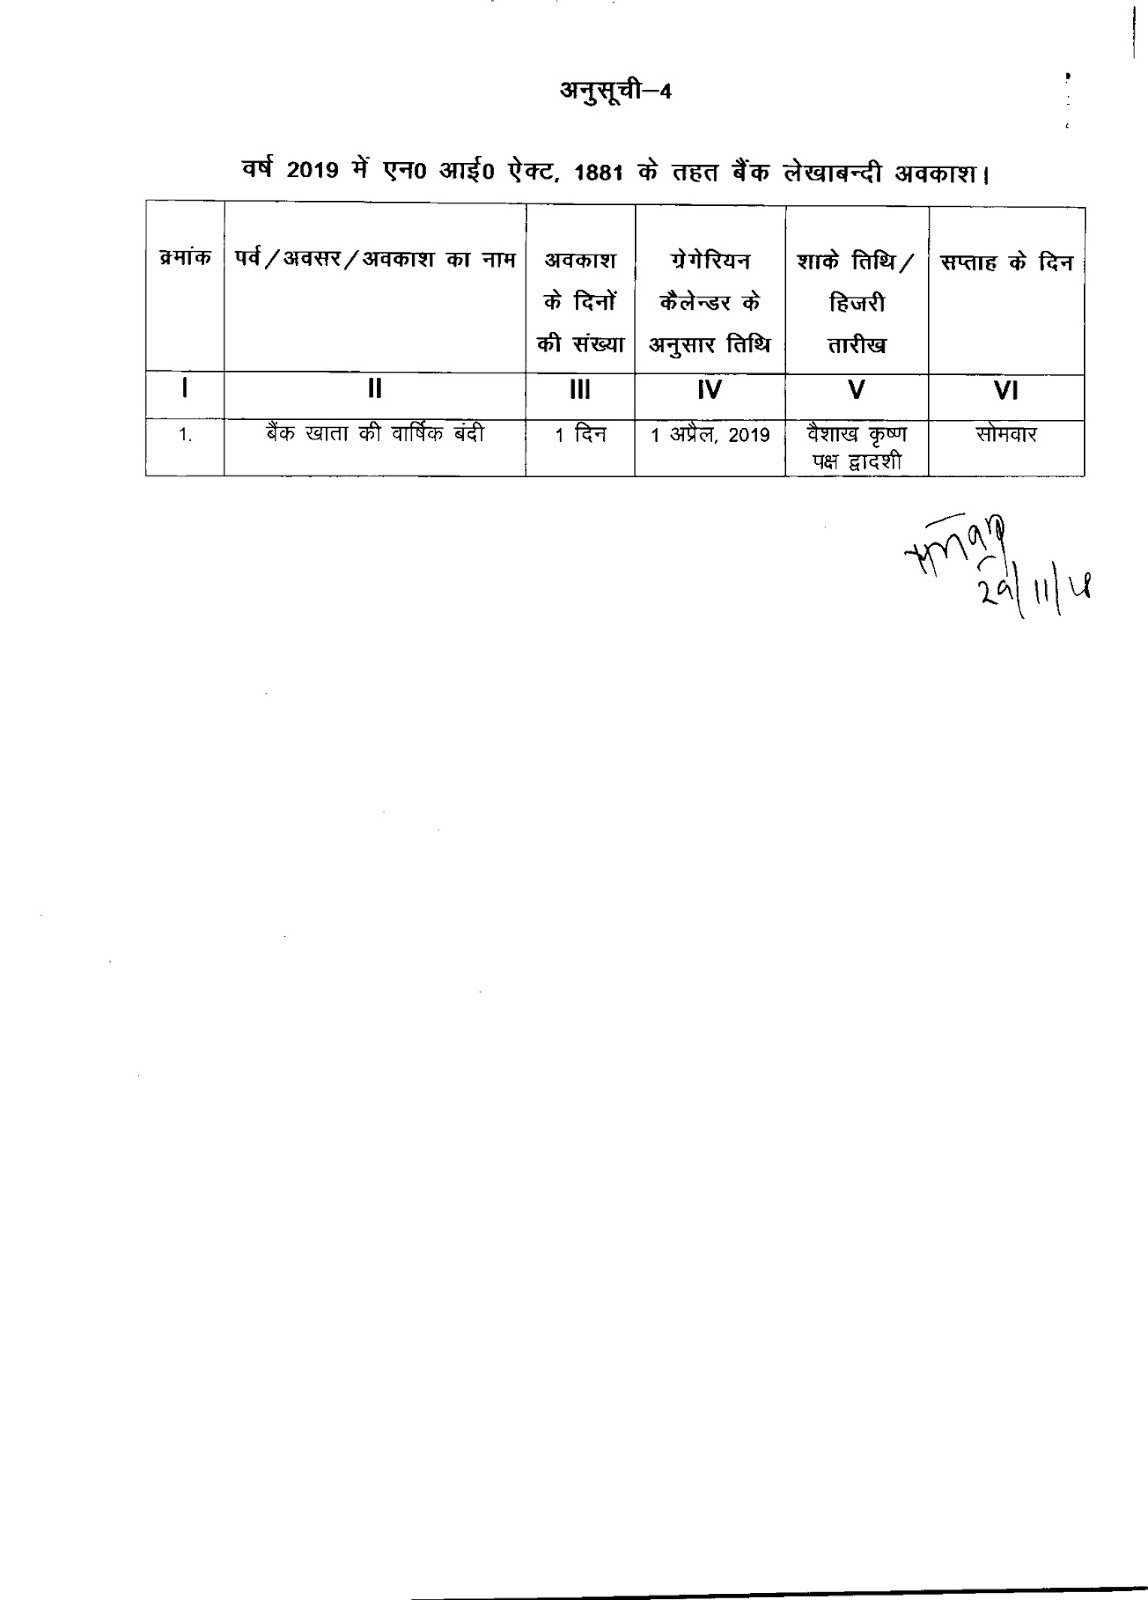 Bihar Government Calendar 2019 #educratsweb throughout Bihar Sarkar Clender